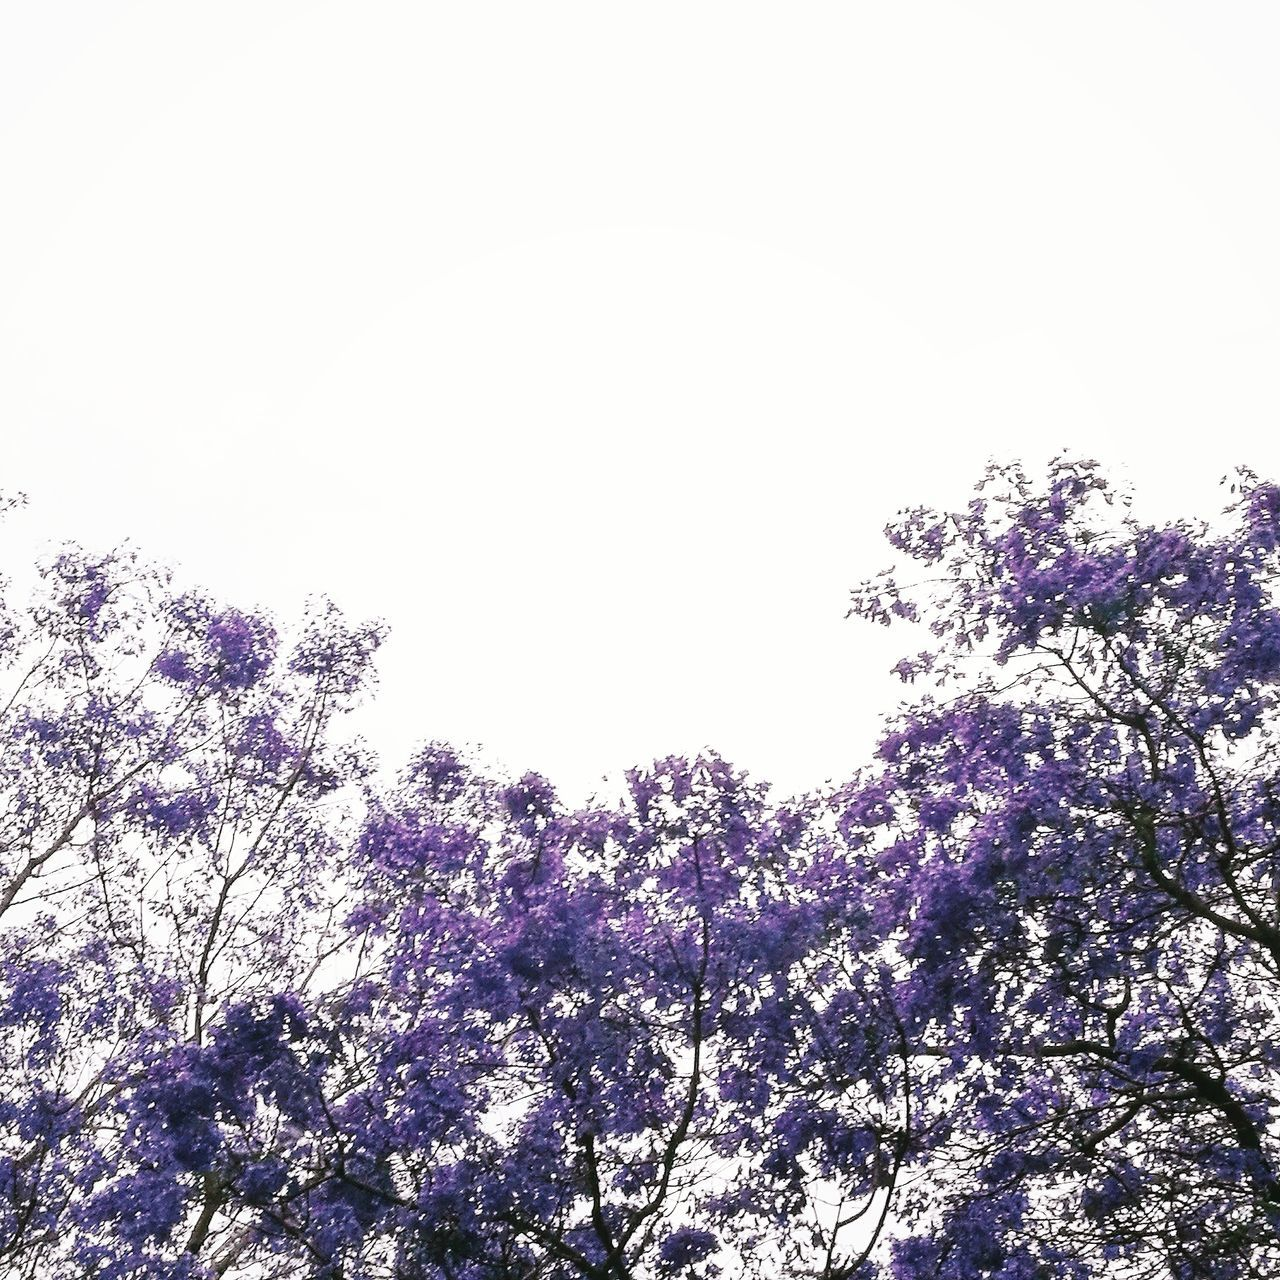 Sky Nature Silhouette No People Day Outdoors Close-up Beauty In NatureMausoleum Dome Arch Façade Local Landmark Corridor History Courtyard  Tree Fragility Jacaranda Jacaranda Tree Purple Purple Flowers